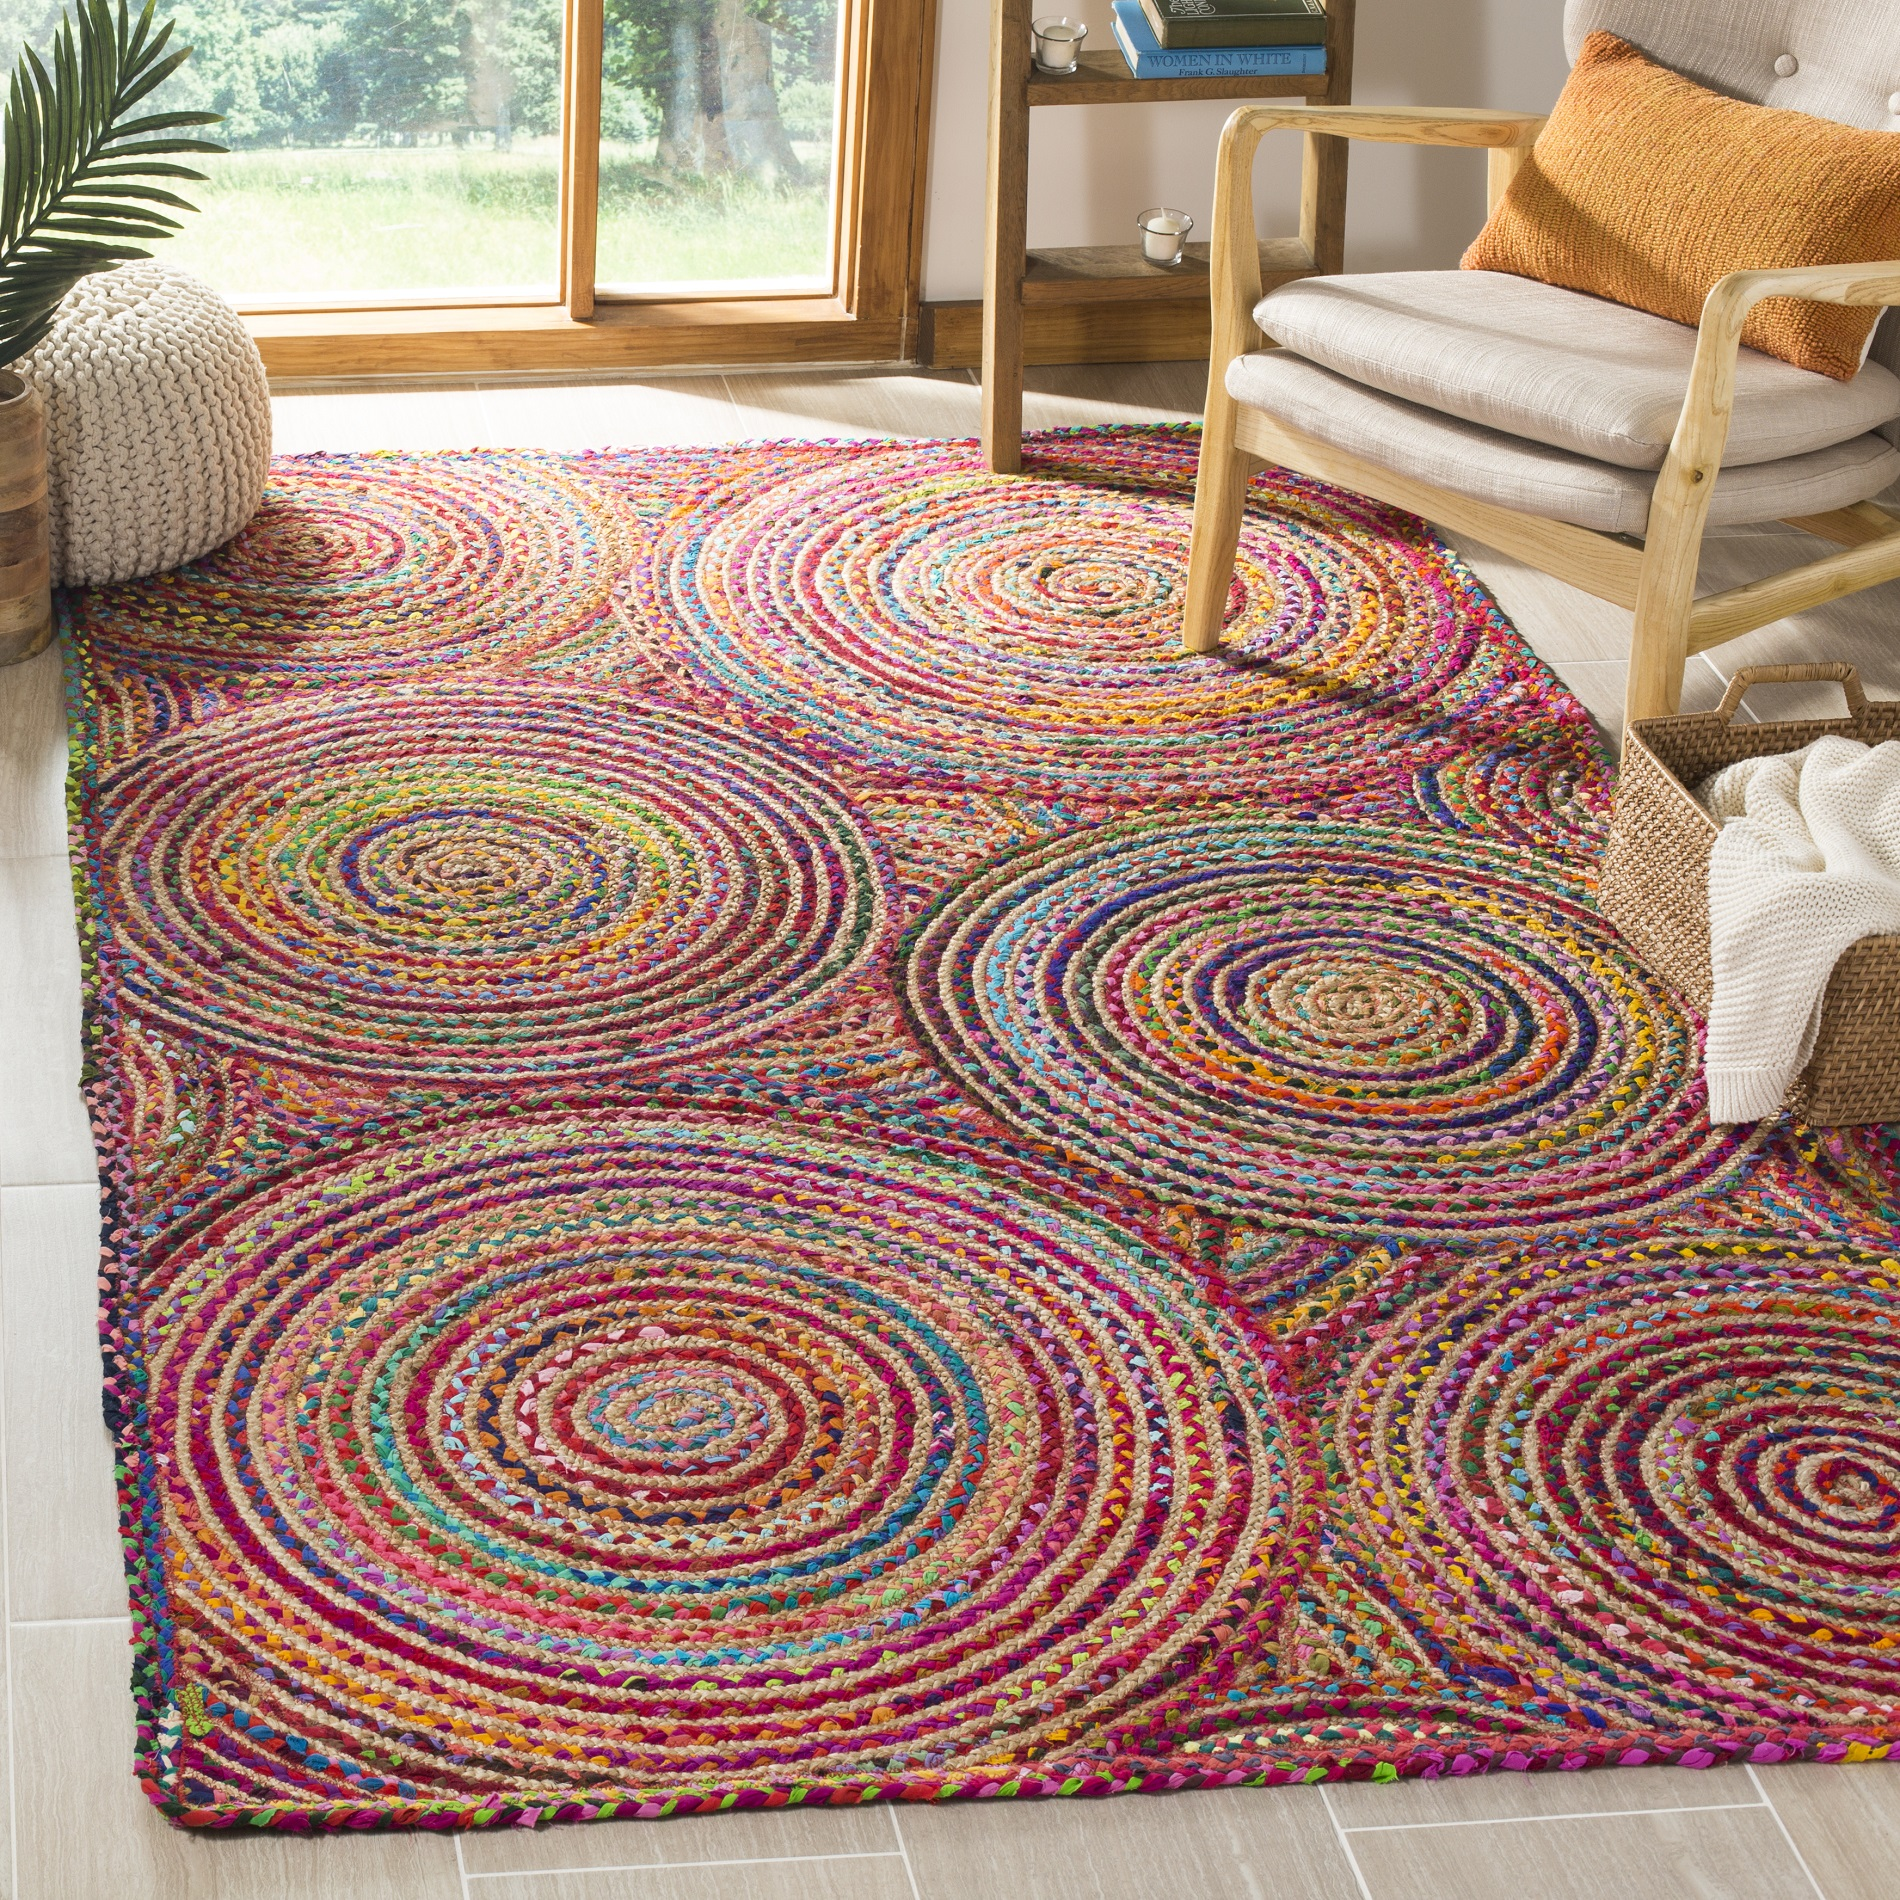 Safavieh Cape Cod Bora Geometric Circles Area Rug or Runner